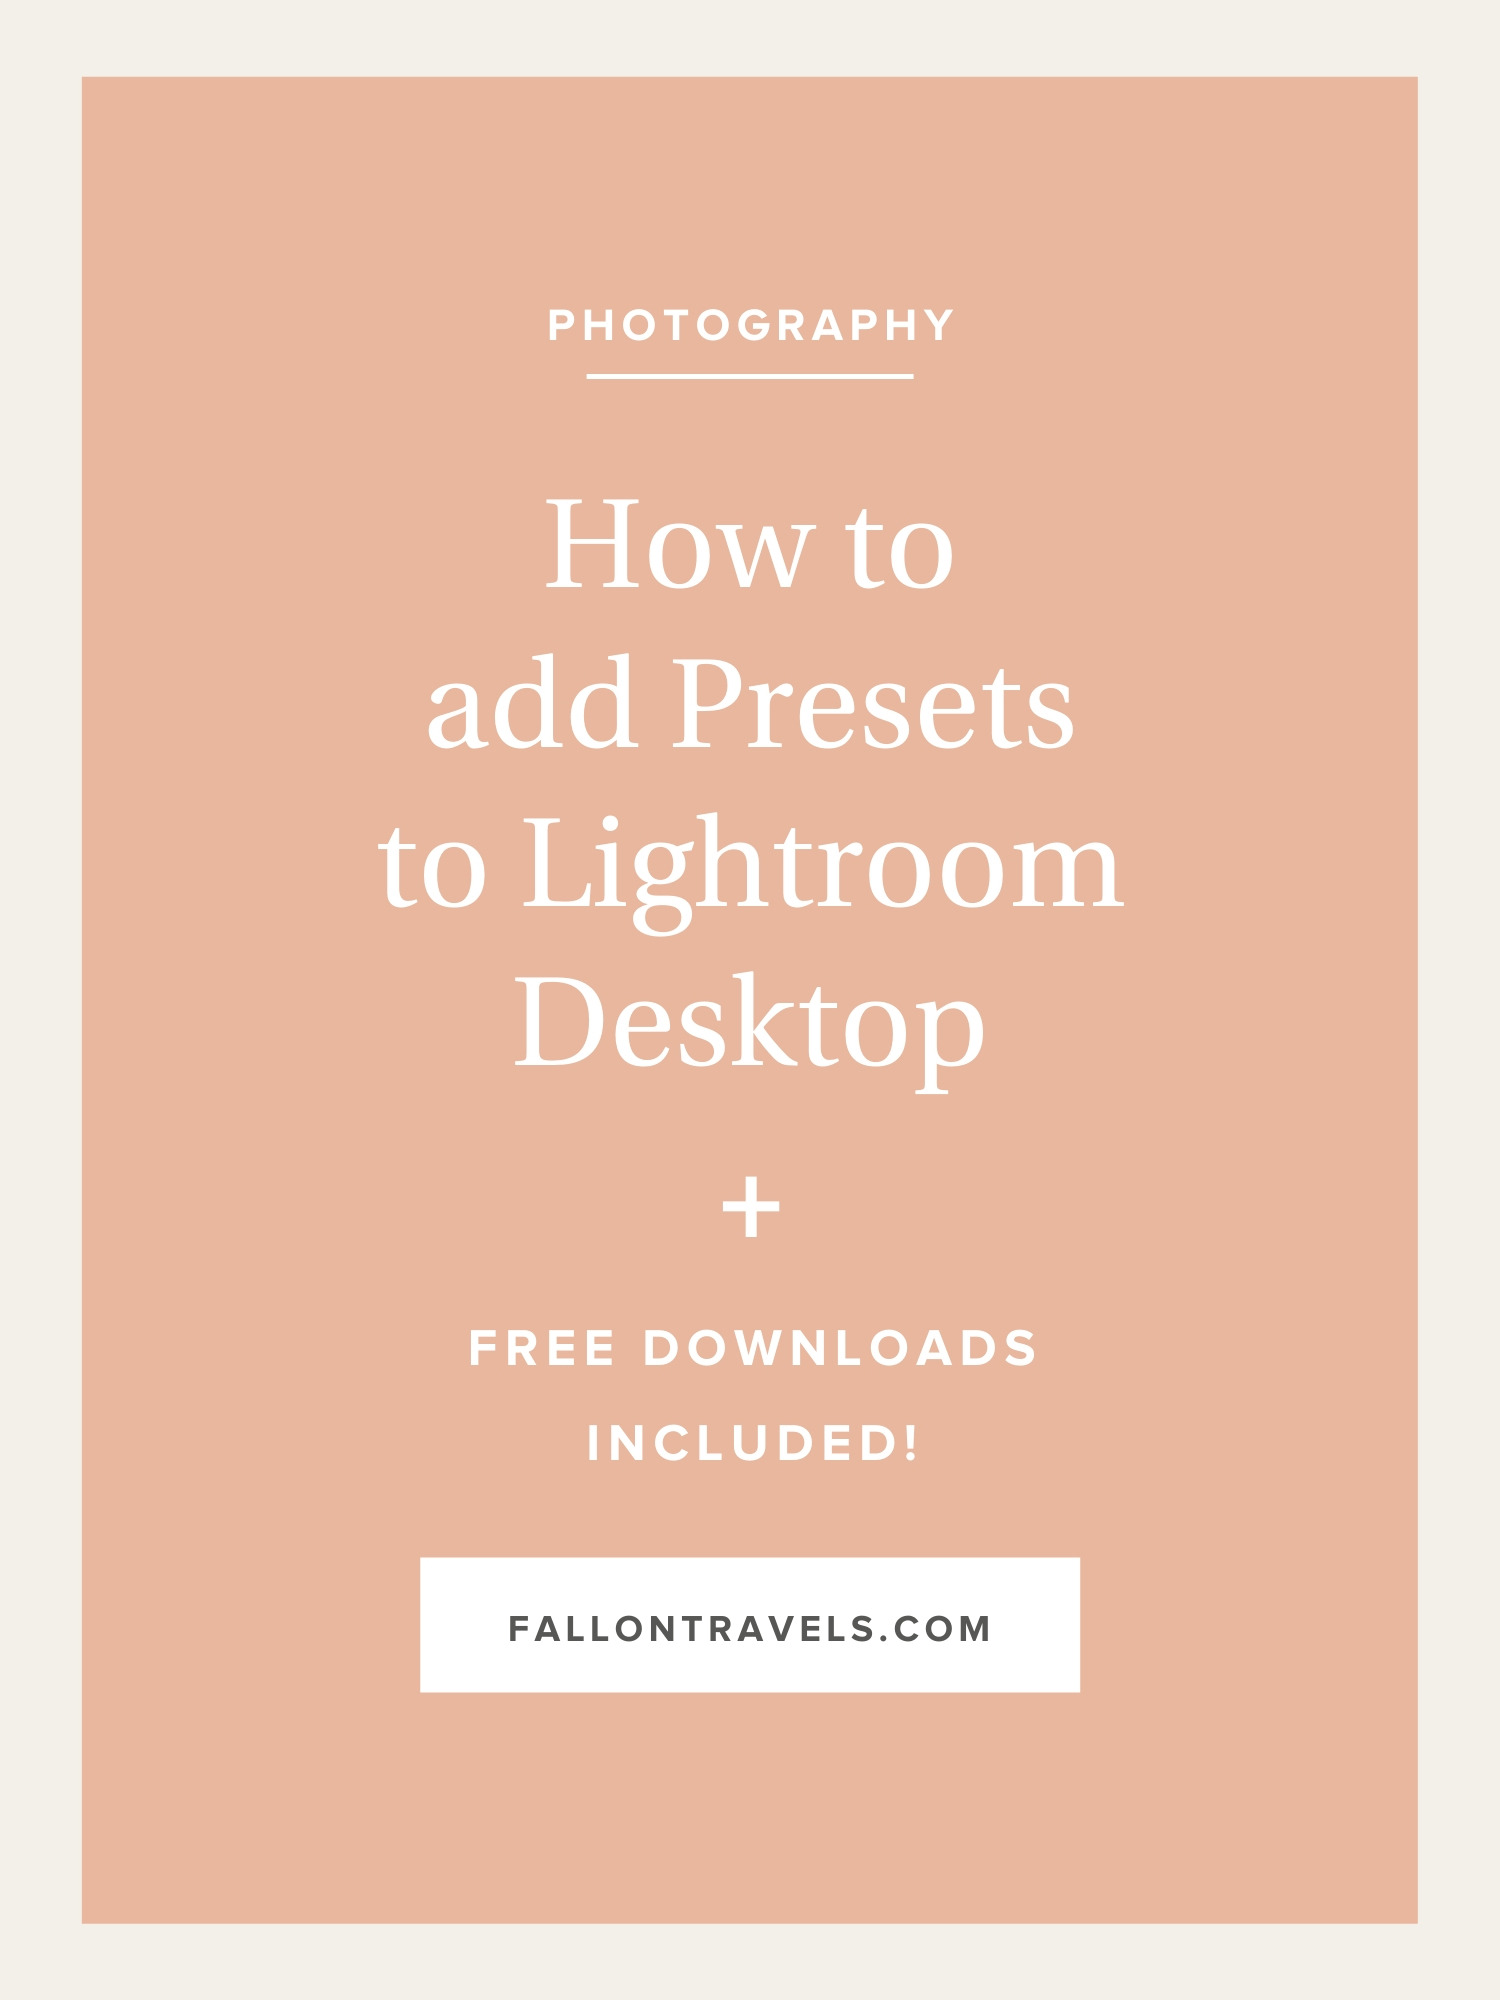 How To Install Lightroom Presets for Desktop — Fallon Travels